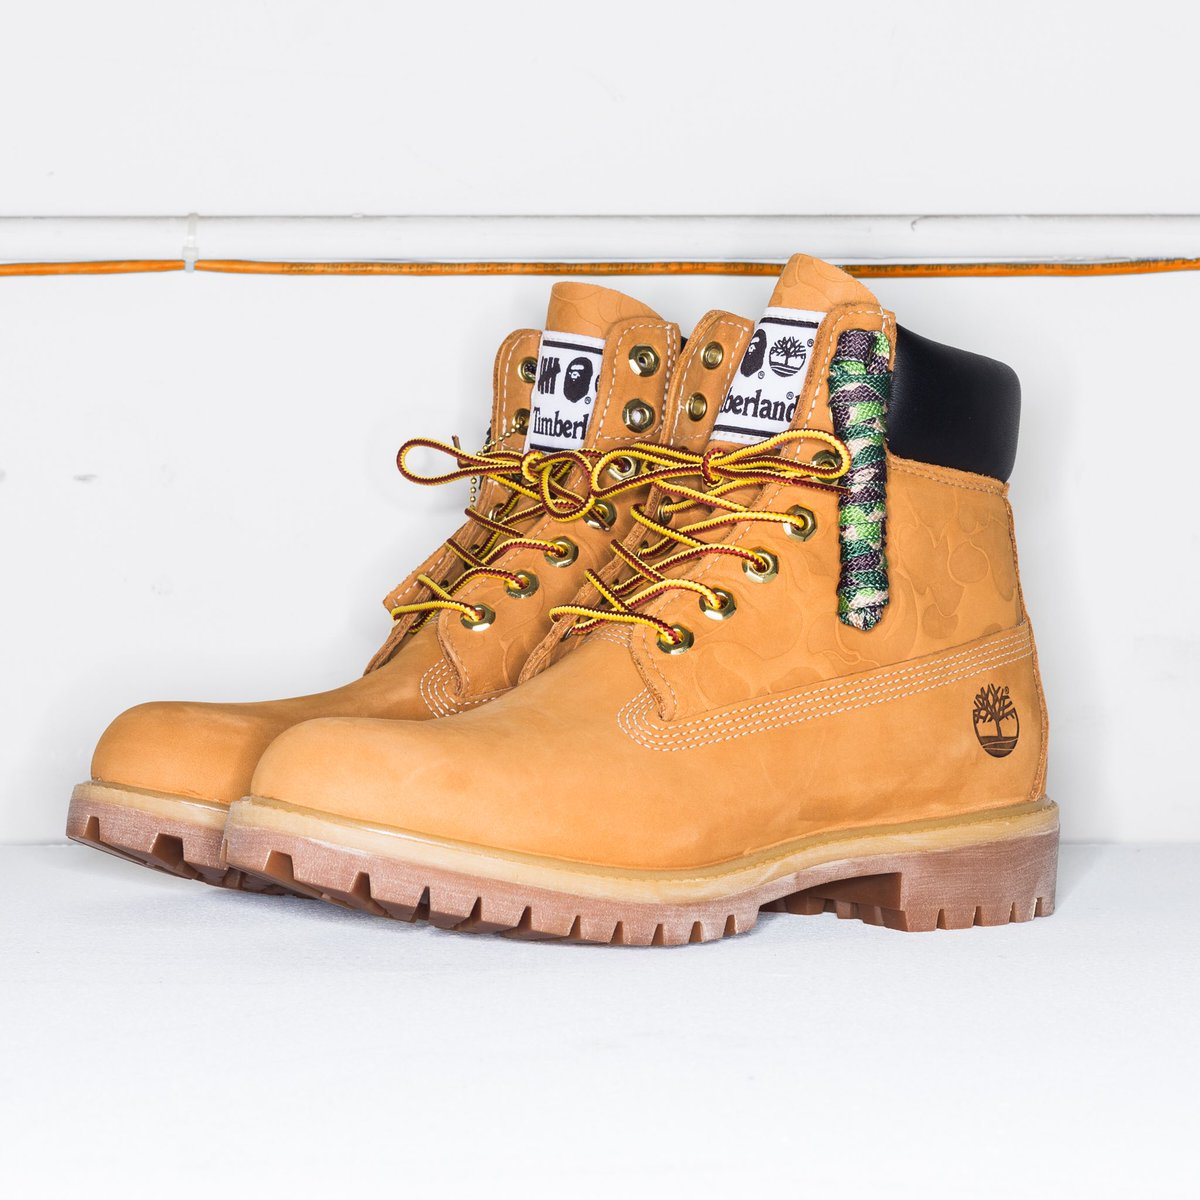 A BATHING APE® x UNDEFEATED x Timberland  bape  undefeated  timberland pic.twitter.com w8wHL3yfC3 1b9eaae430